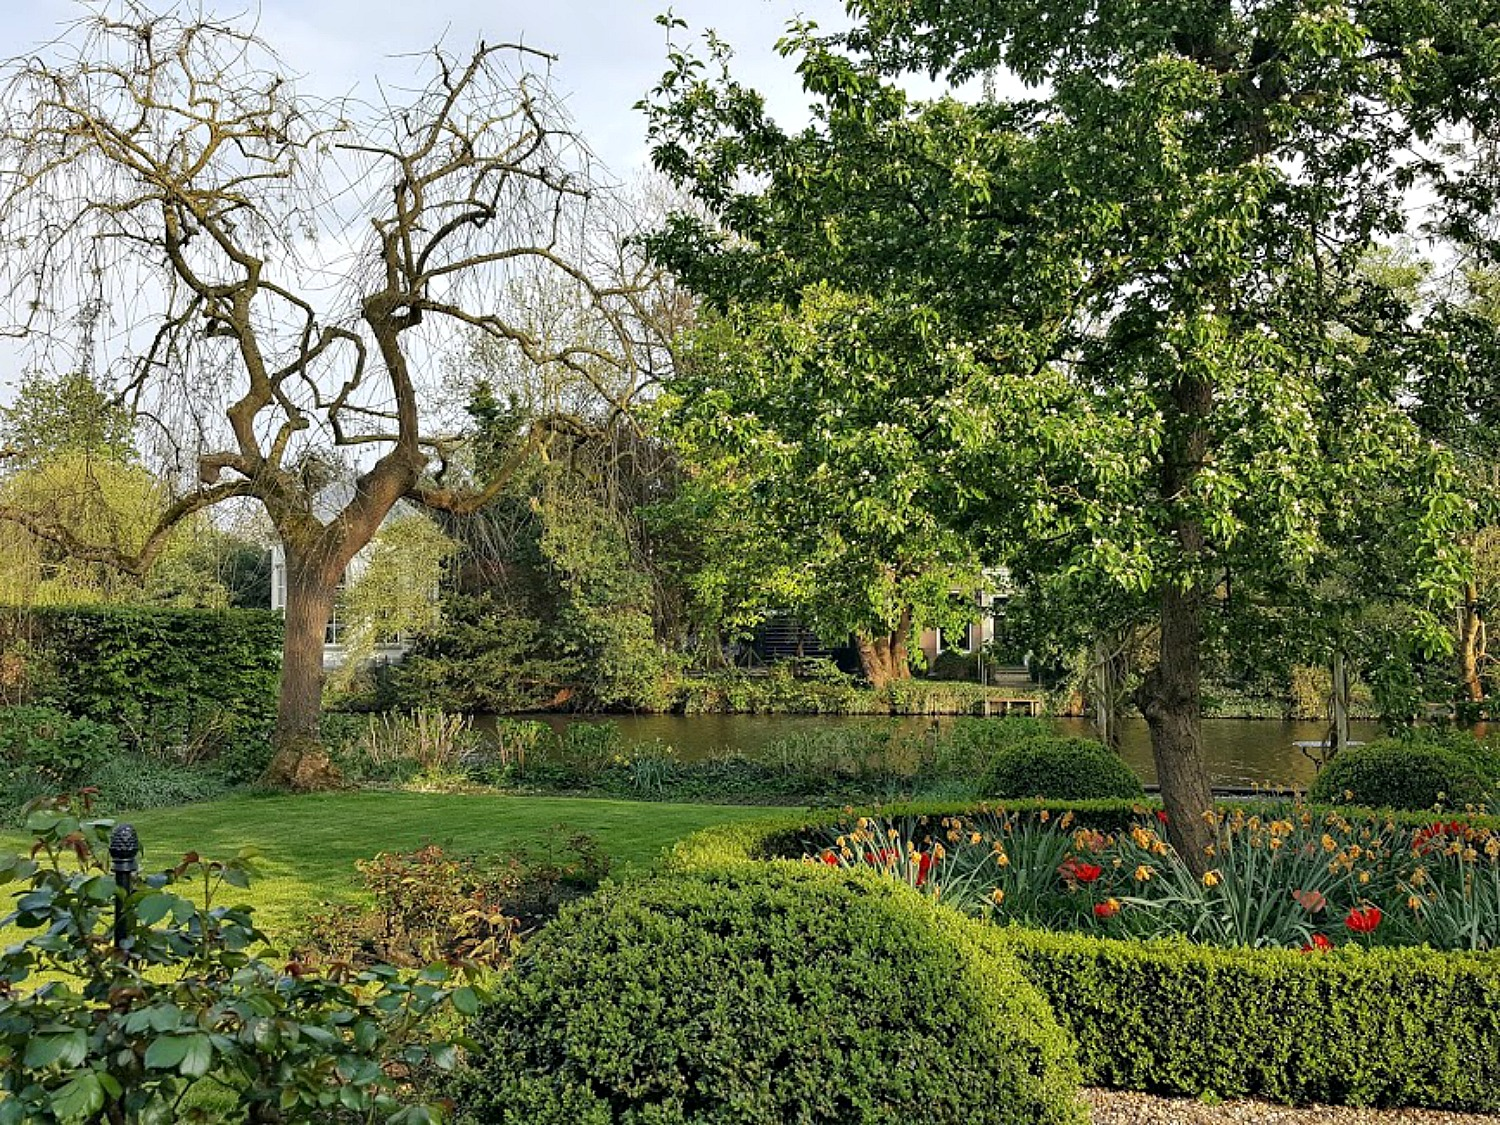 Best day trips from Amsterdam. Loenen aan de Vecht -picture perfect town few miles from Amsterdam.